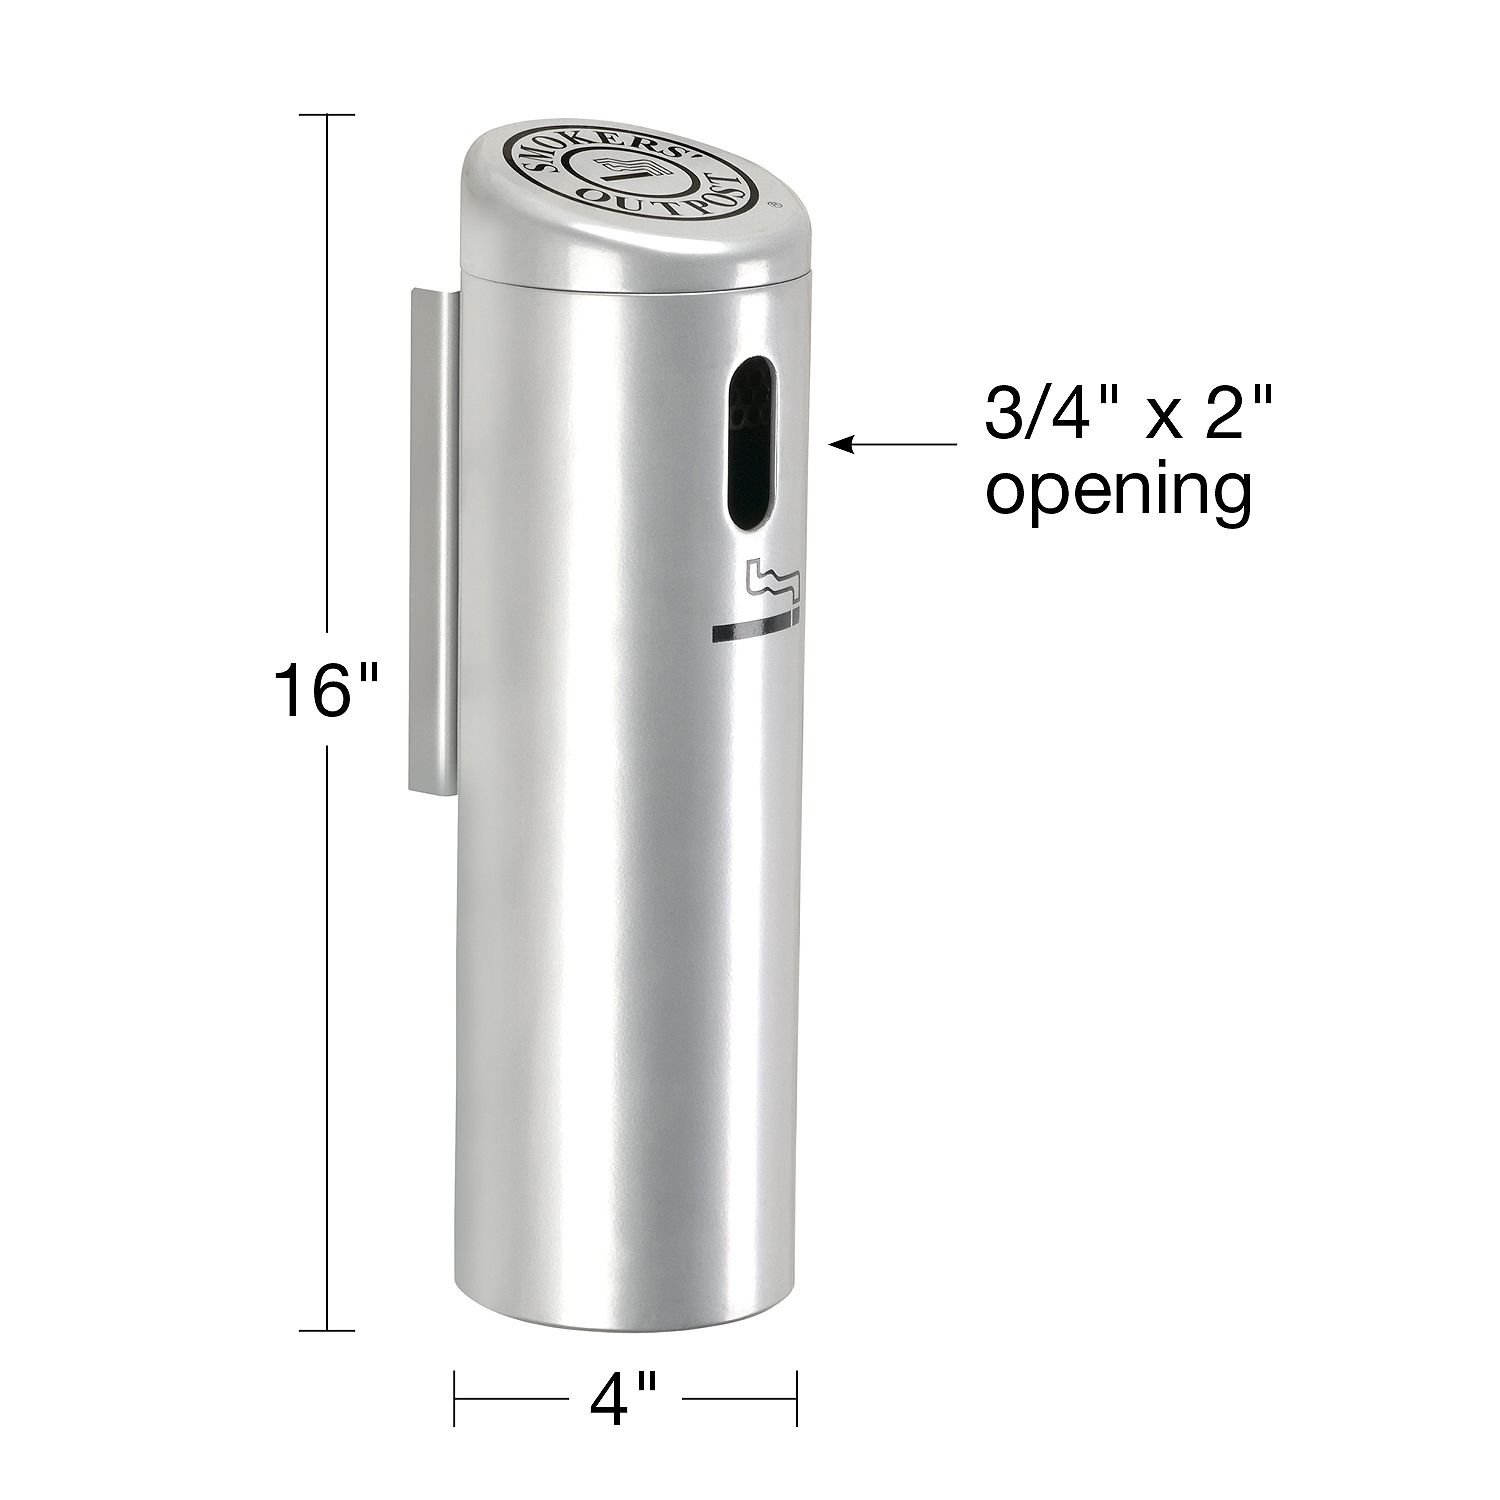 Swivel-Lock Hang on Wall Silver Smoker's Pole Cigarette Receptacle